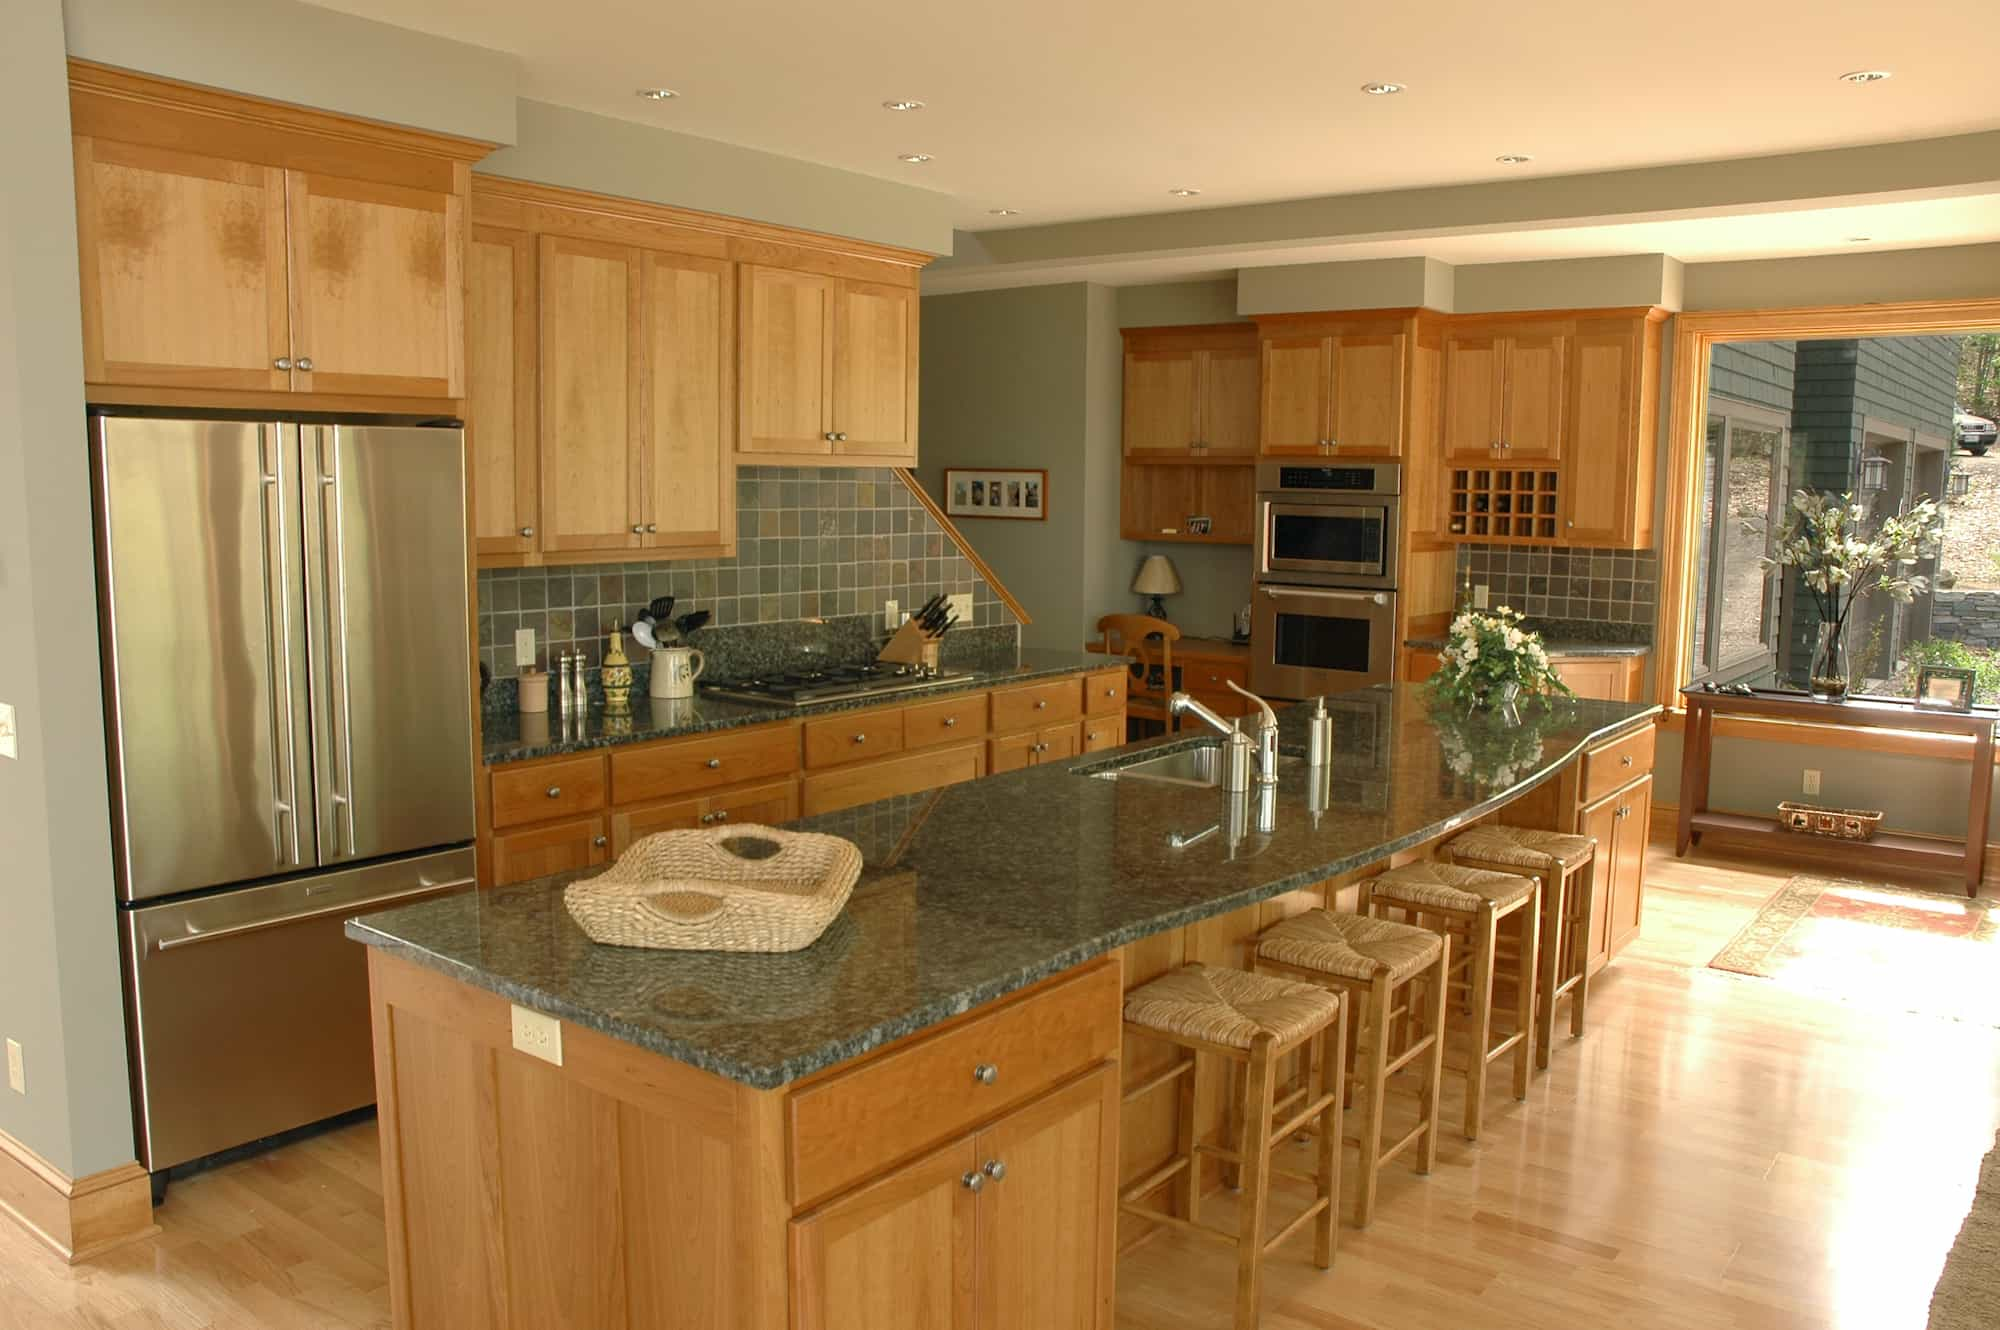 Custom Wood Cabinets in a Kitchen